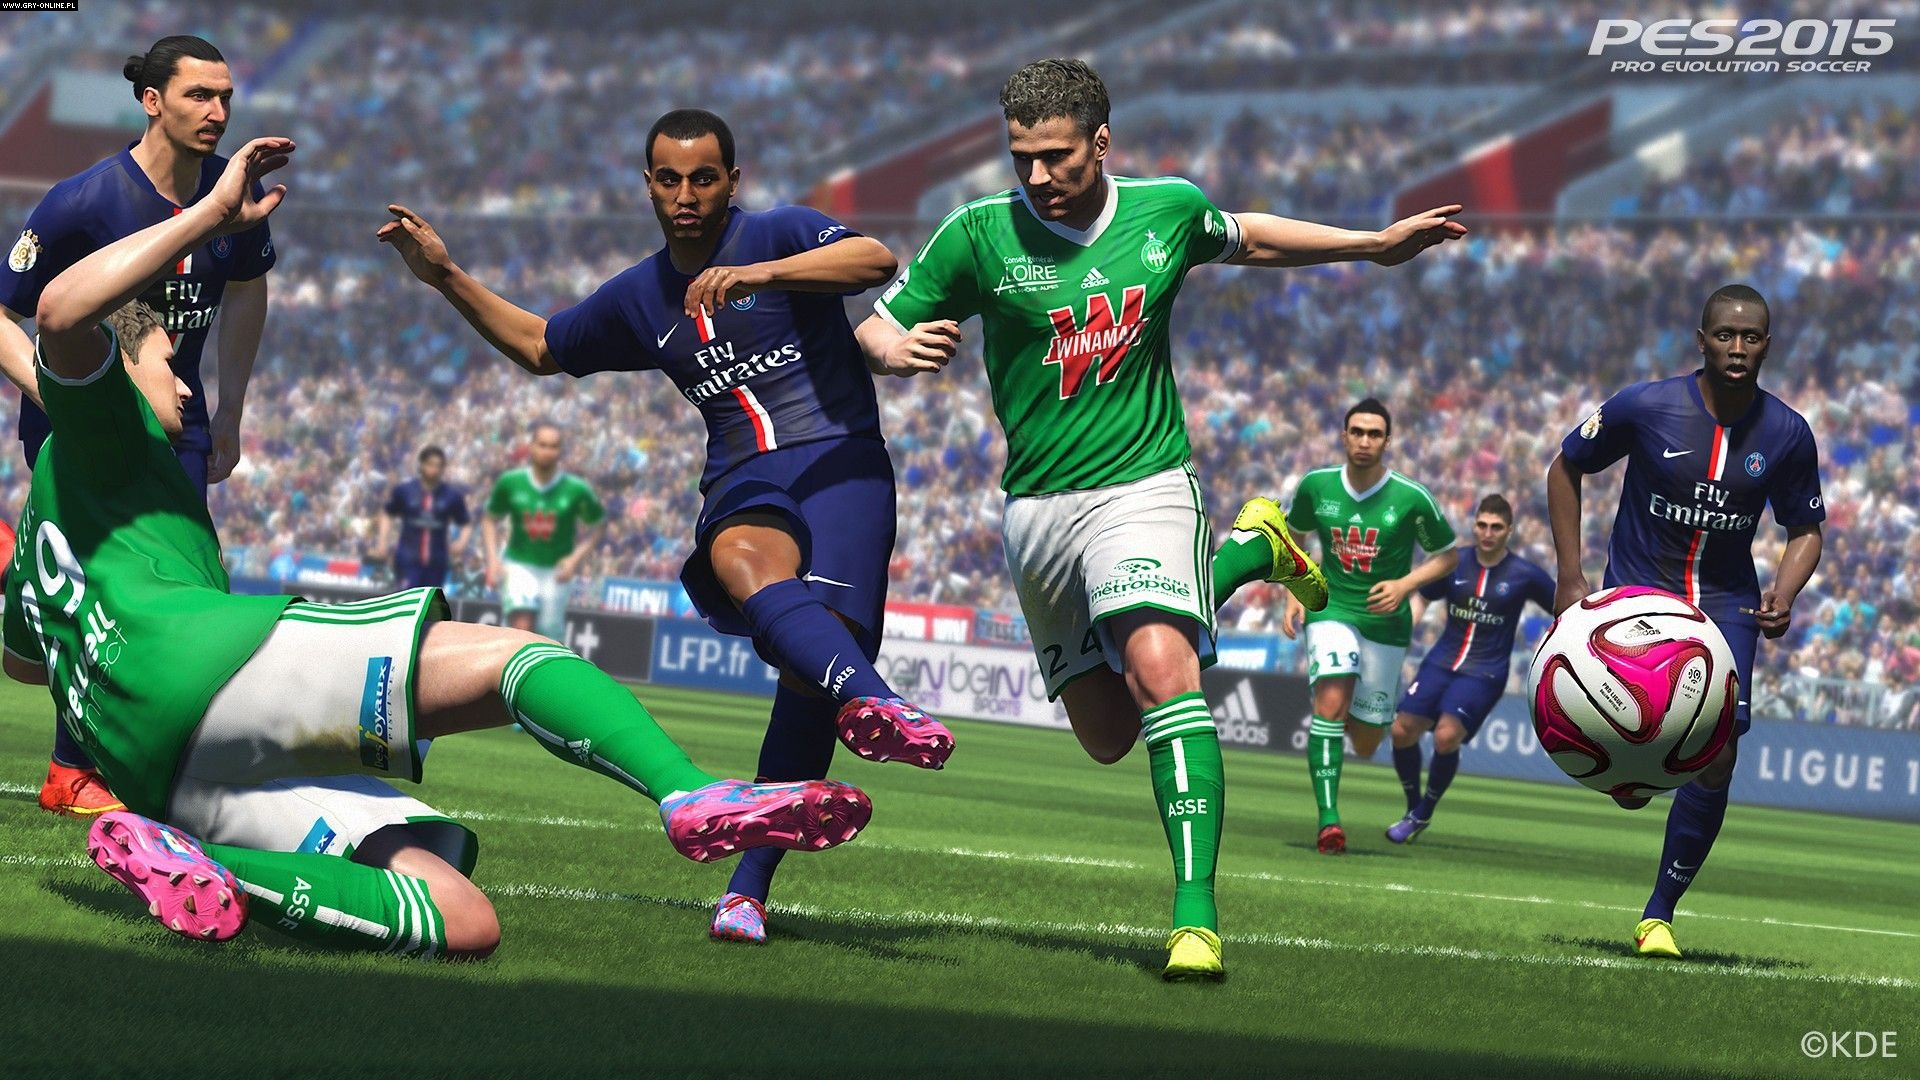 Soccer ps4 - Utg bug buster review